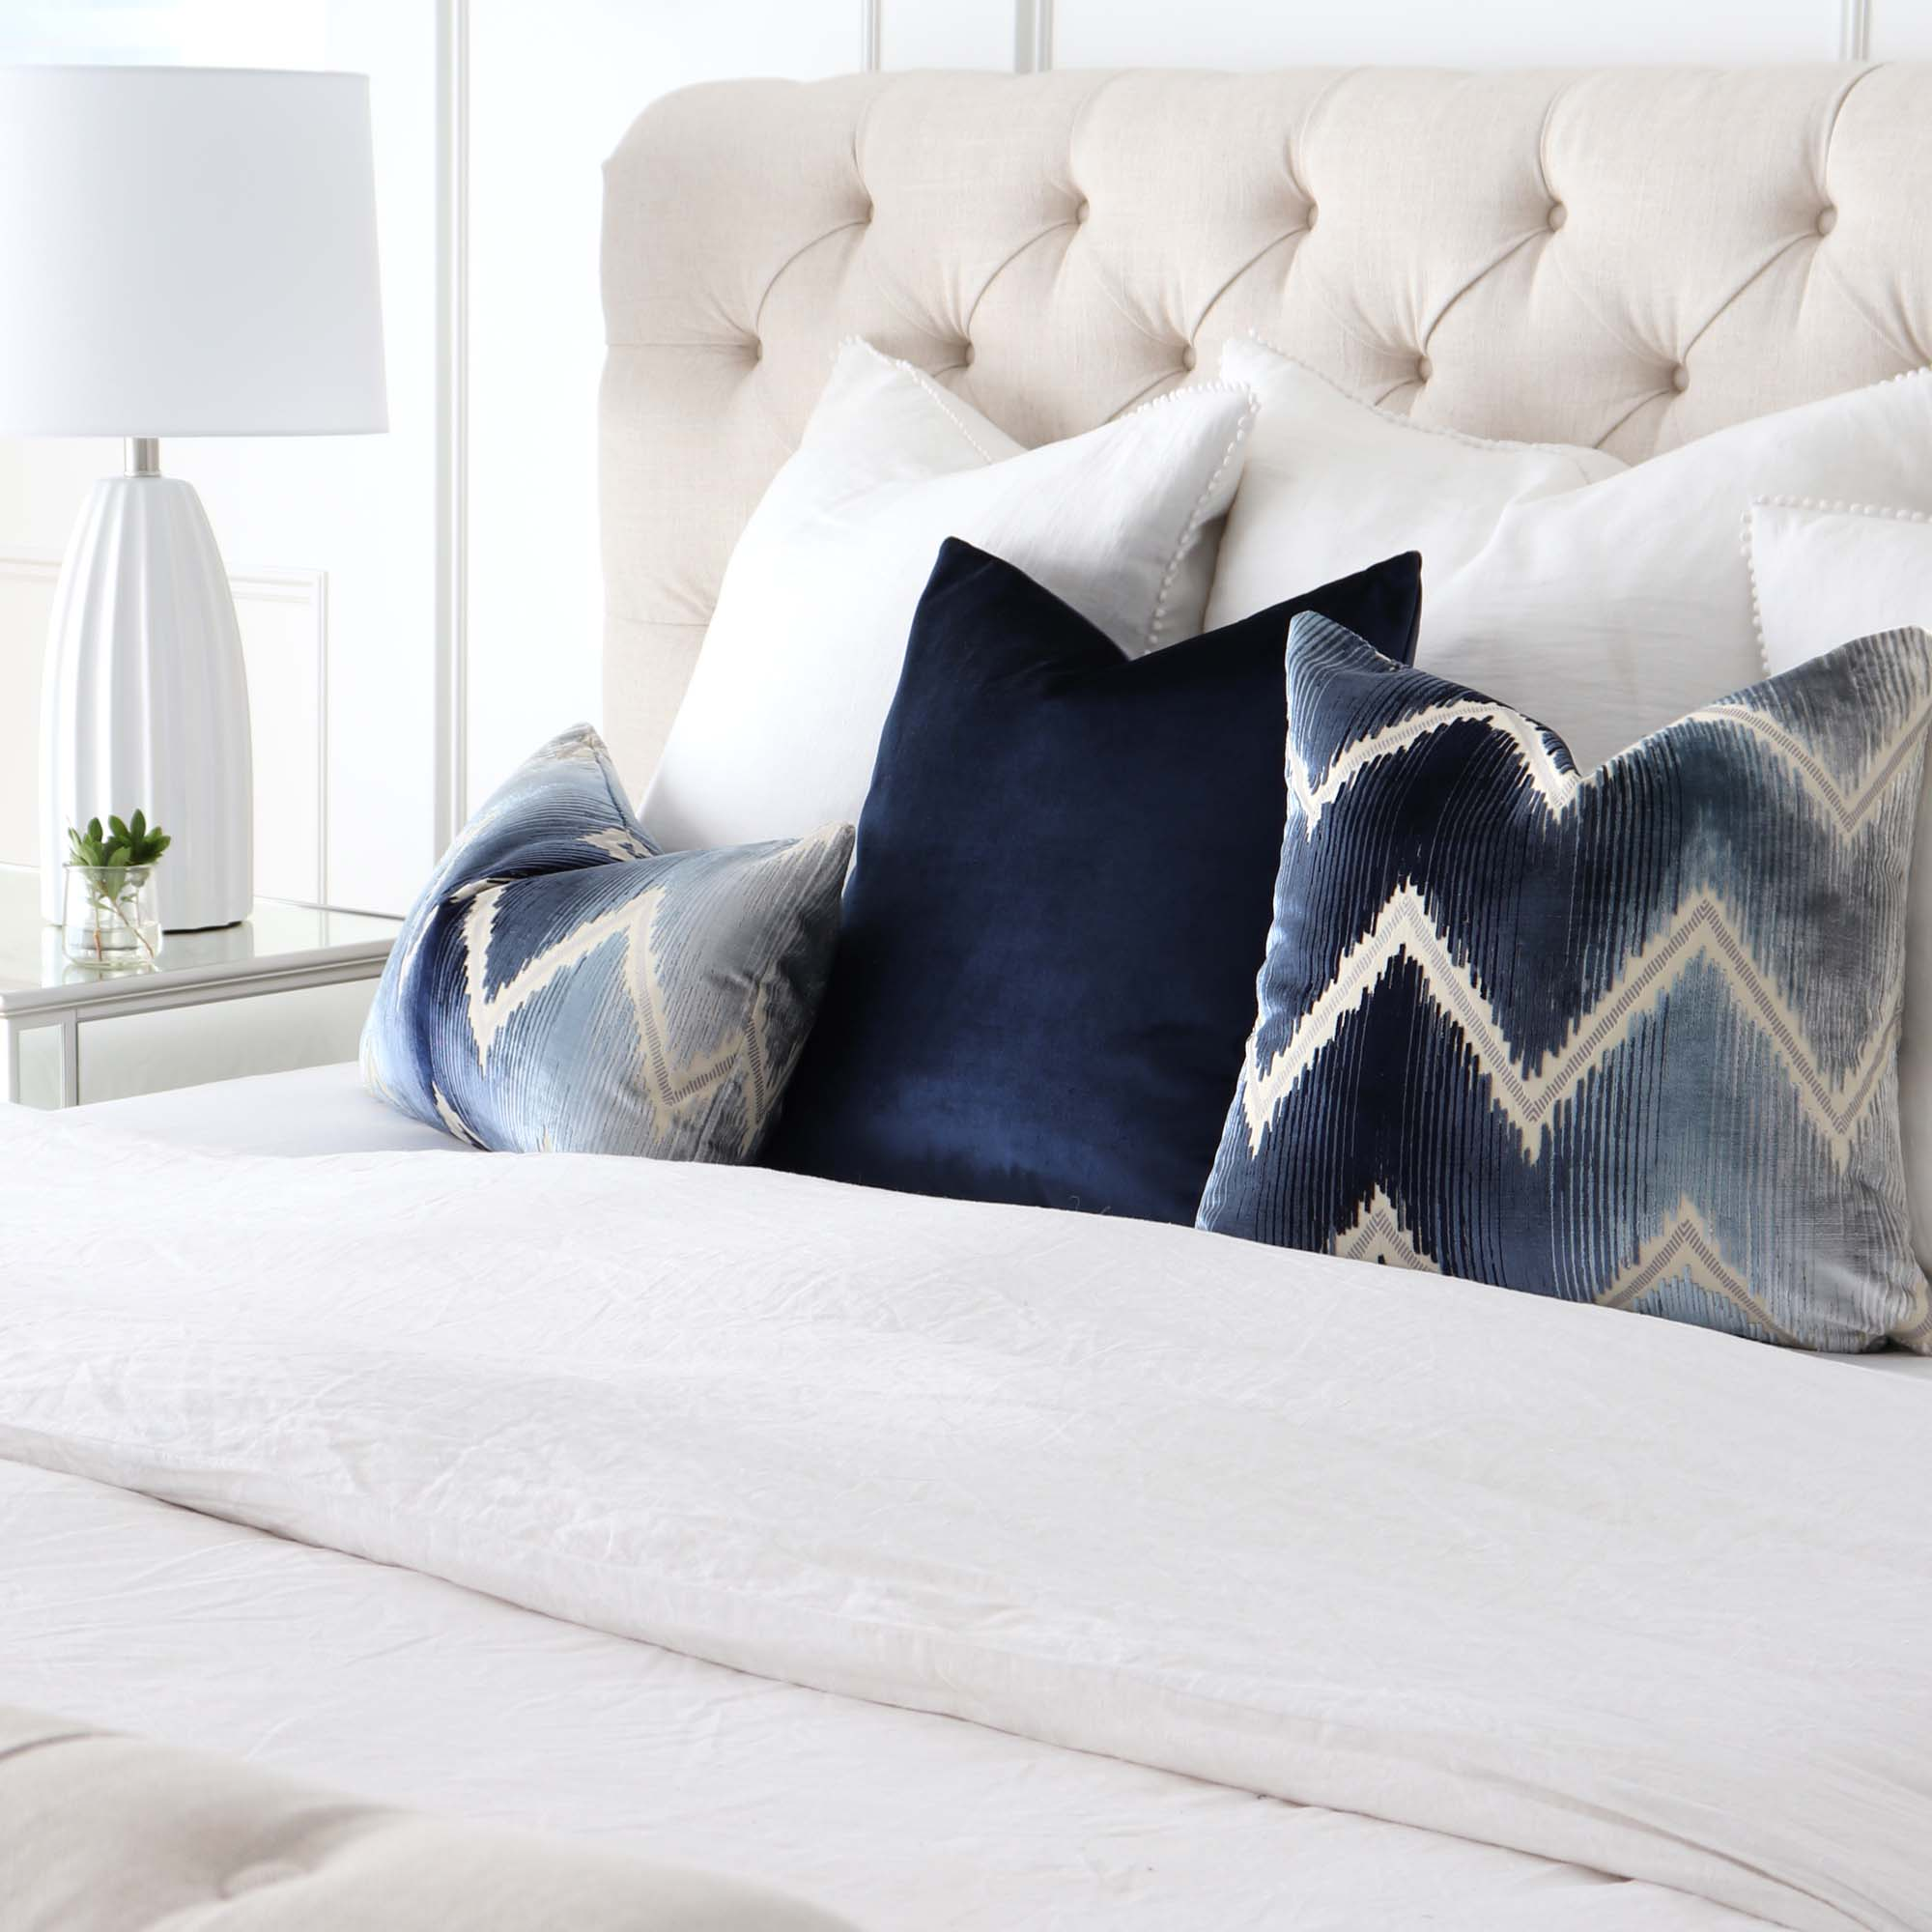 Chloe and Olive Designer Throw Pillow Covers in All Colors